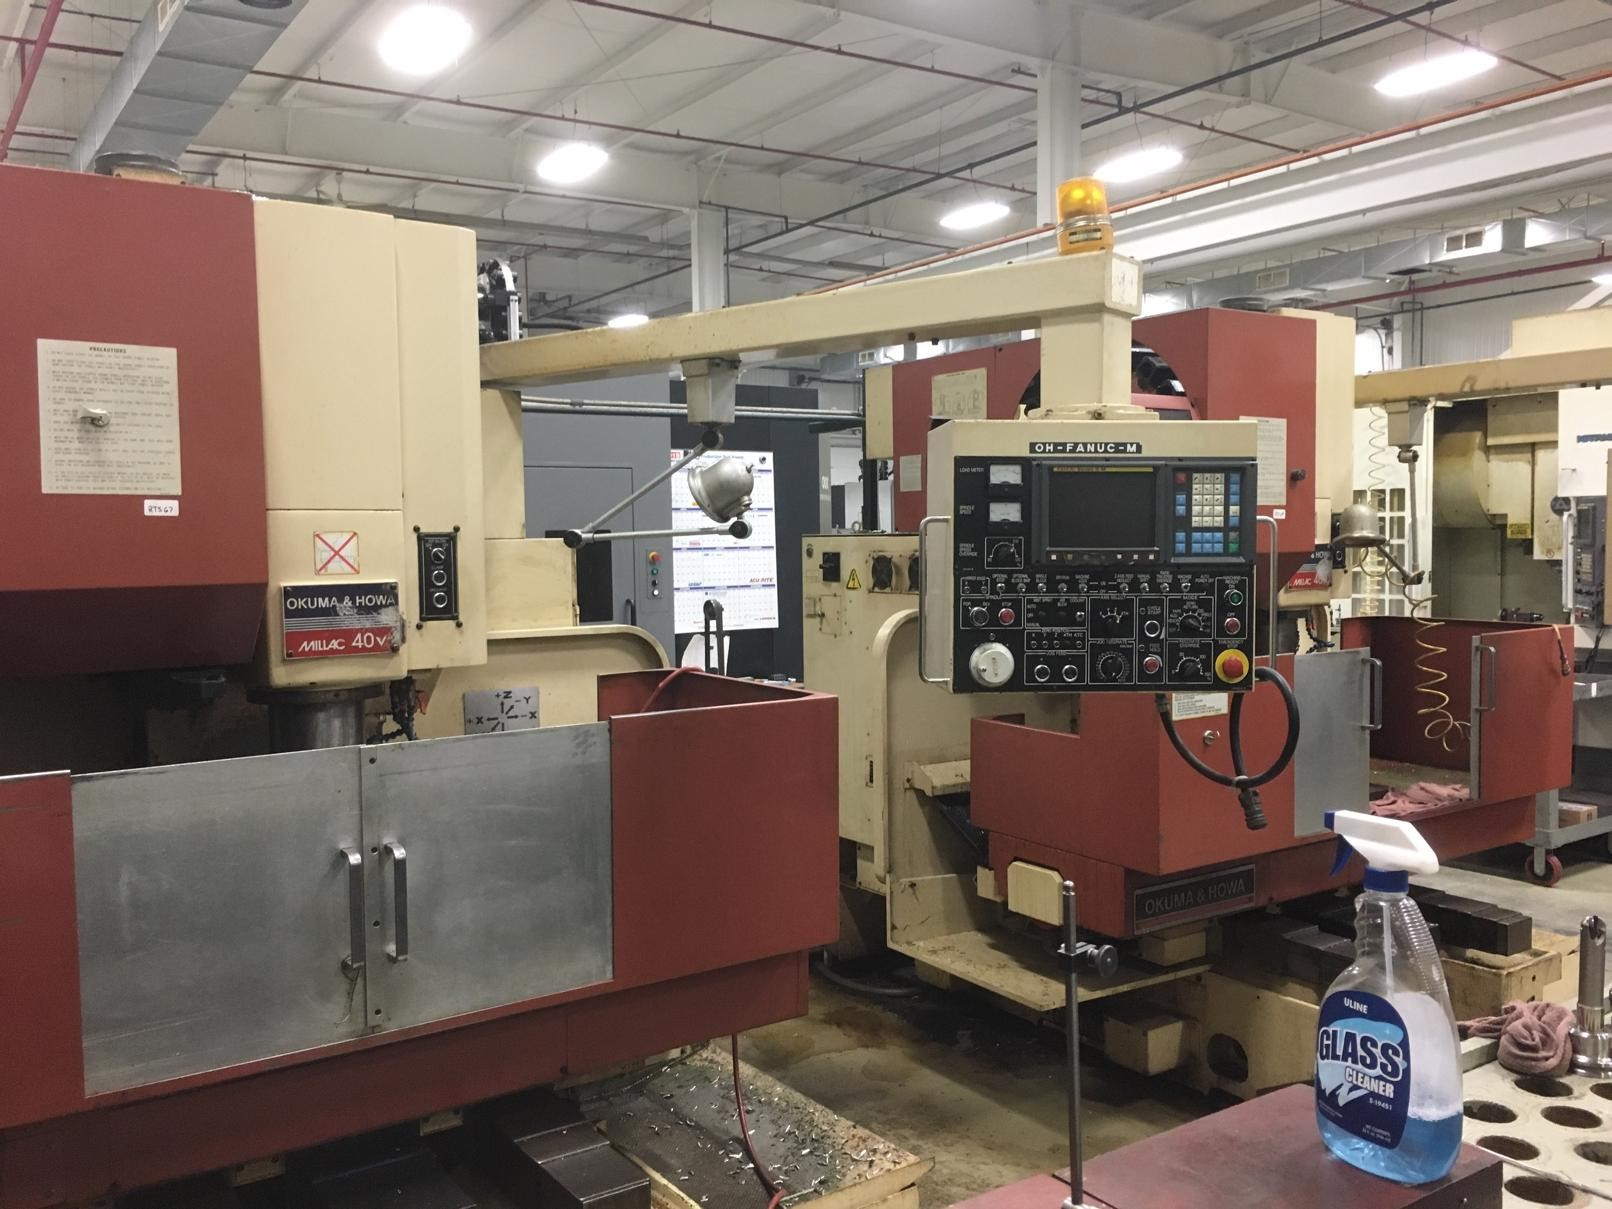 Okuma & Howa Milac 40V CNC Vertical Machining Center